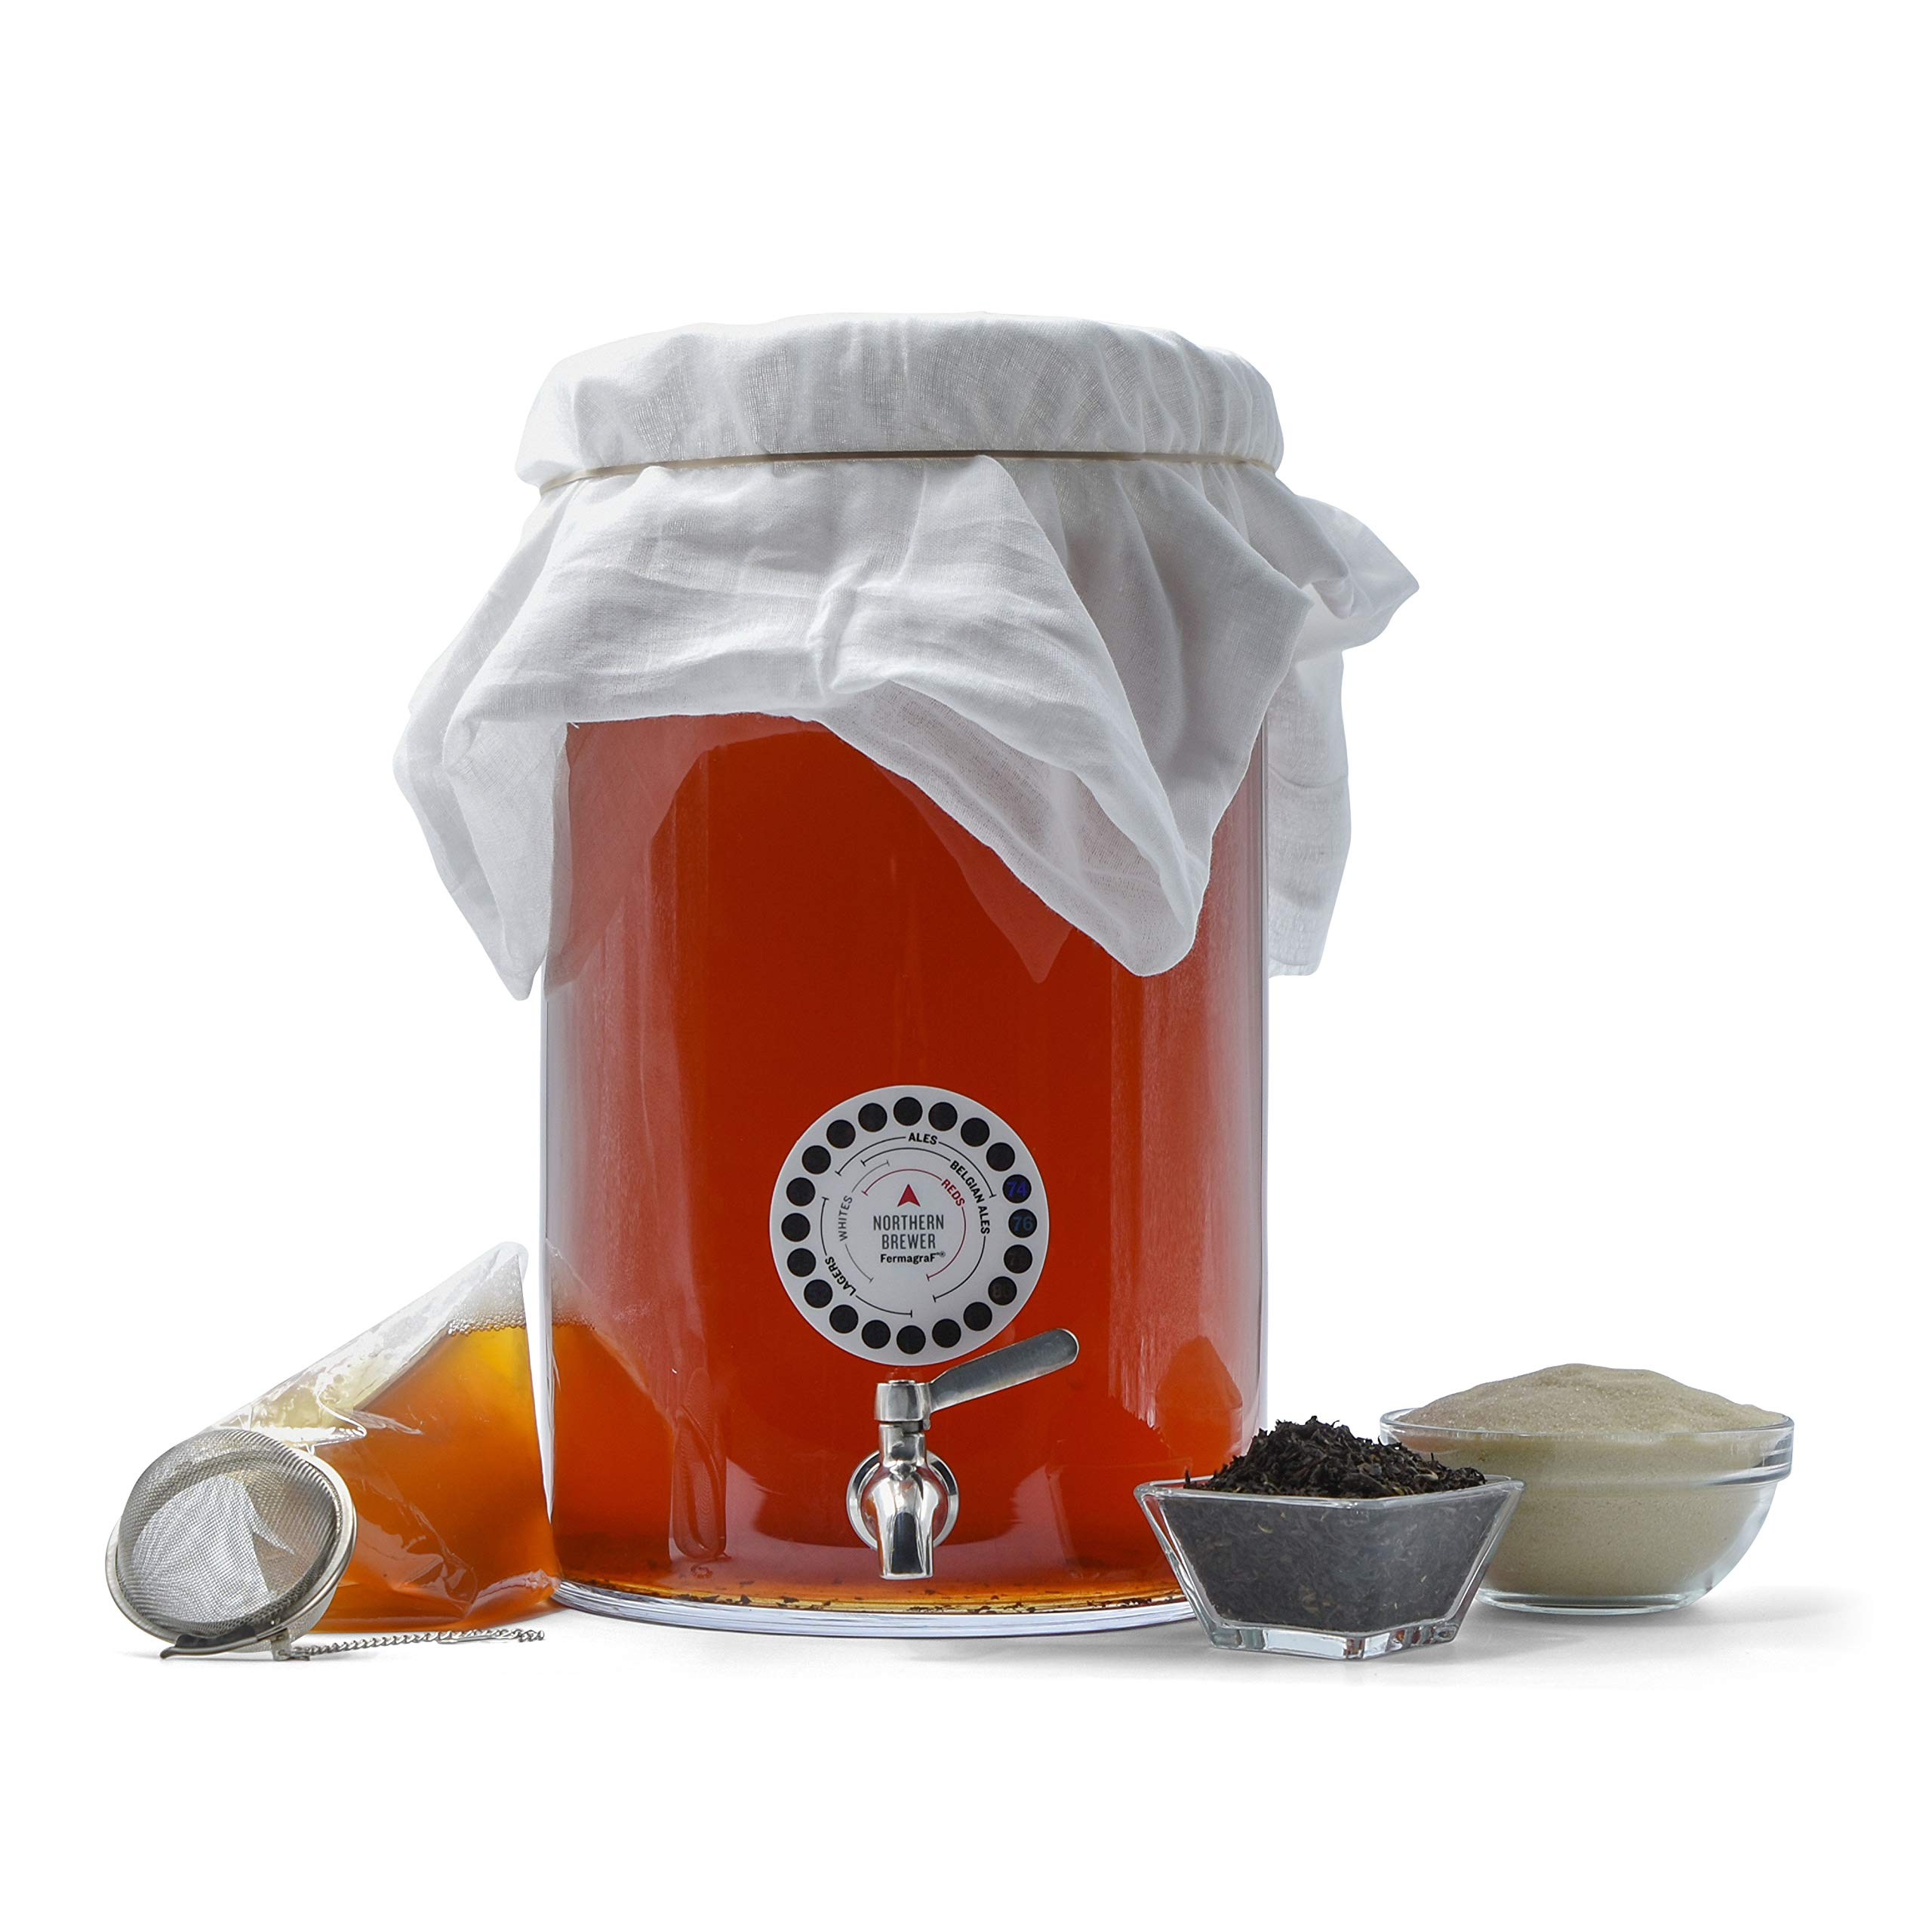 Northern Brewer - Kombucha Brewing Starter Kit With Scoby Included (3 Gallon Glass with Stainless Spigot) by Northern Brewer (Image #1)